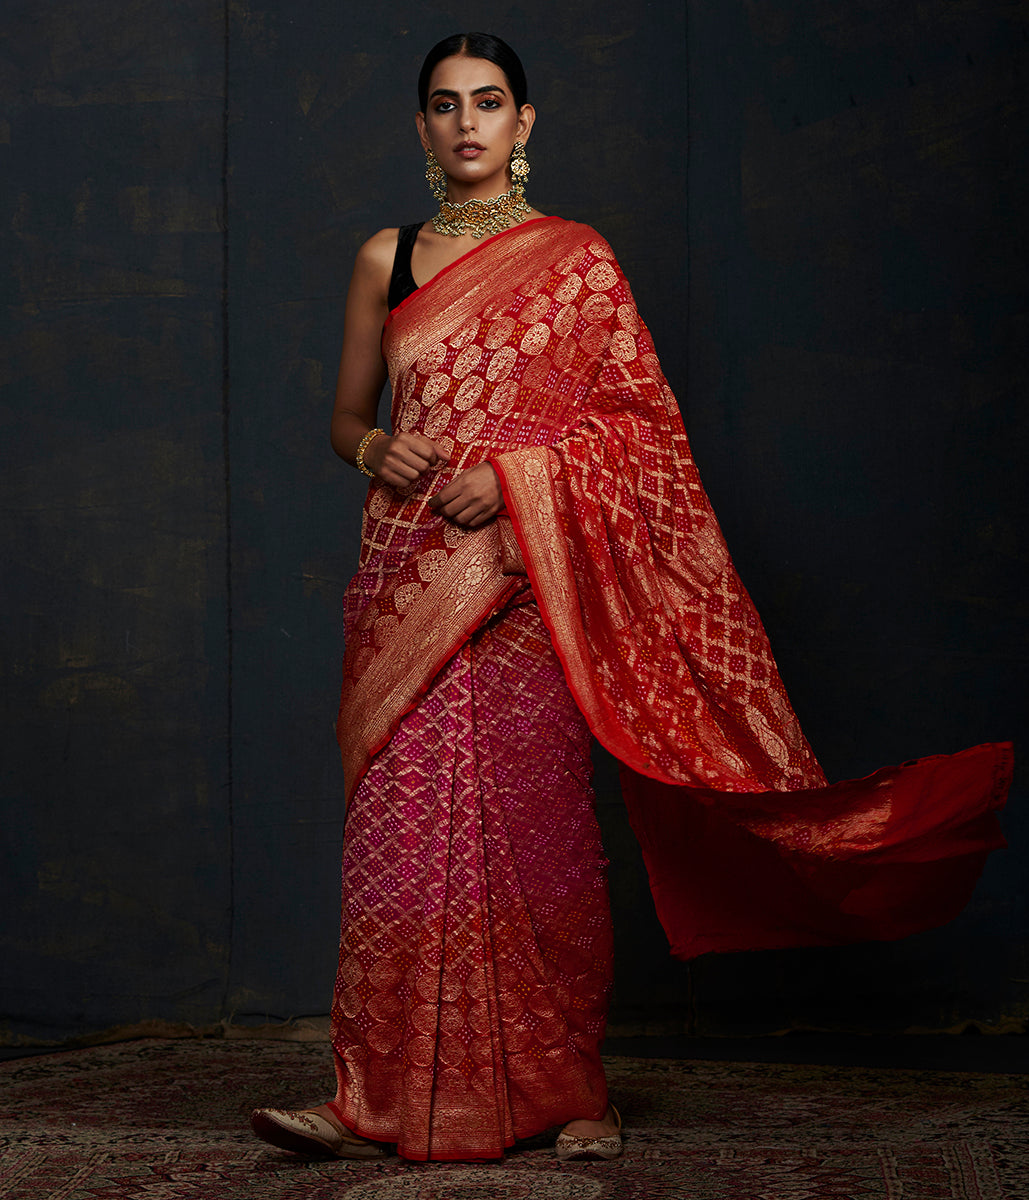 Handwoven Banarasi Bandhej Saree in Red and Pink ombre dye